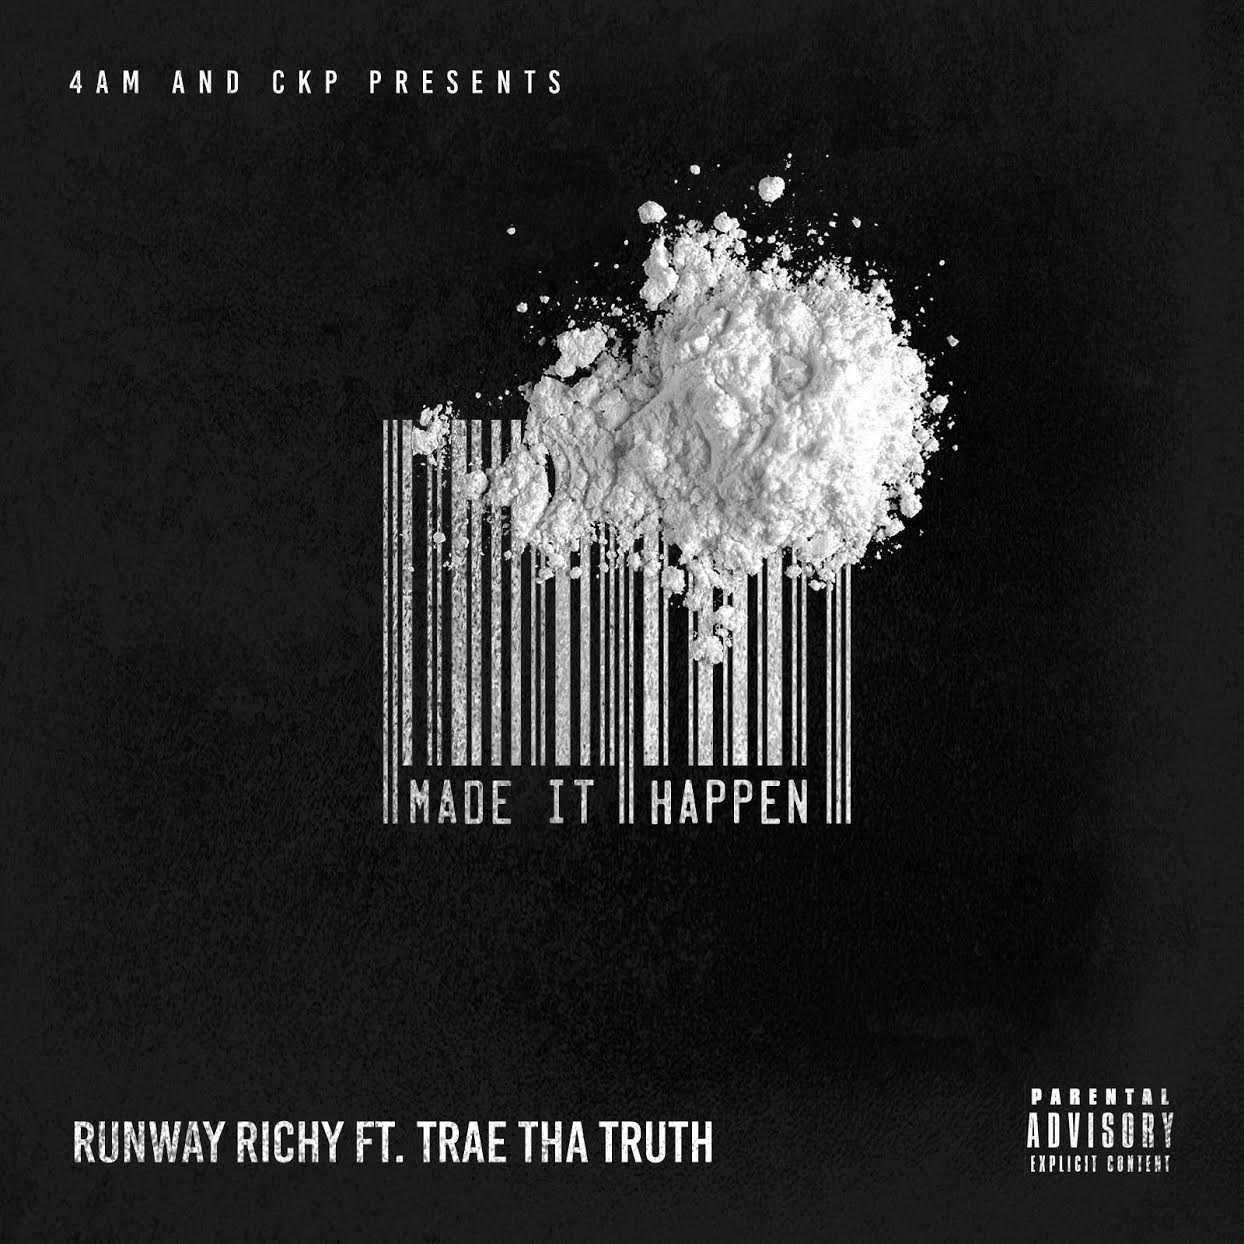 Runway Richy ft Trae The Truth Make it Happen